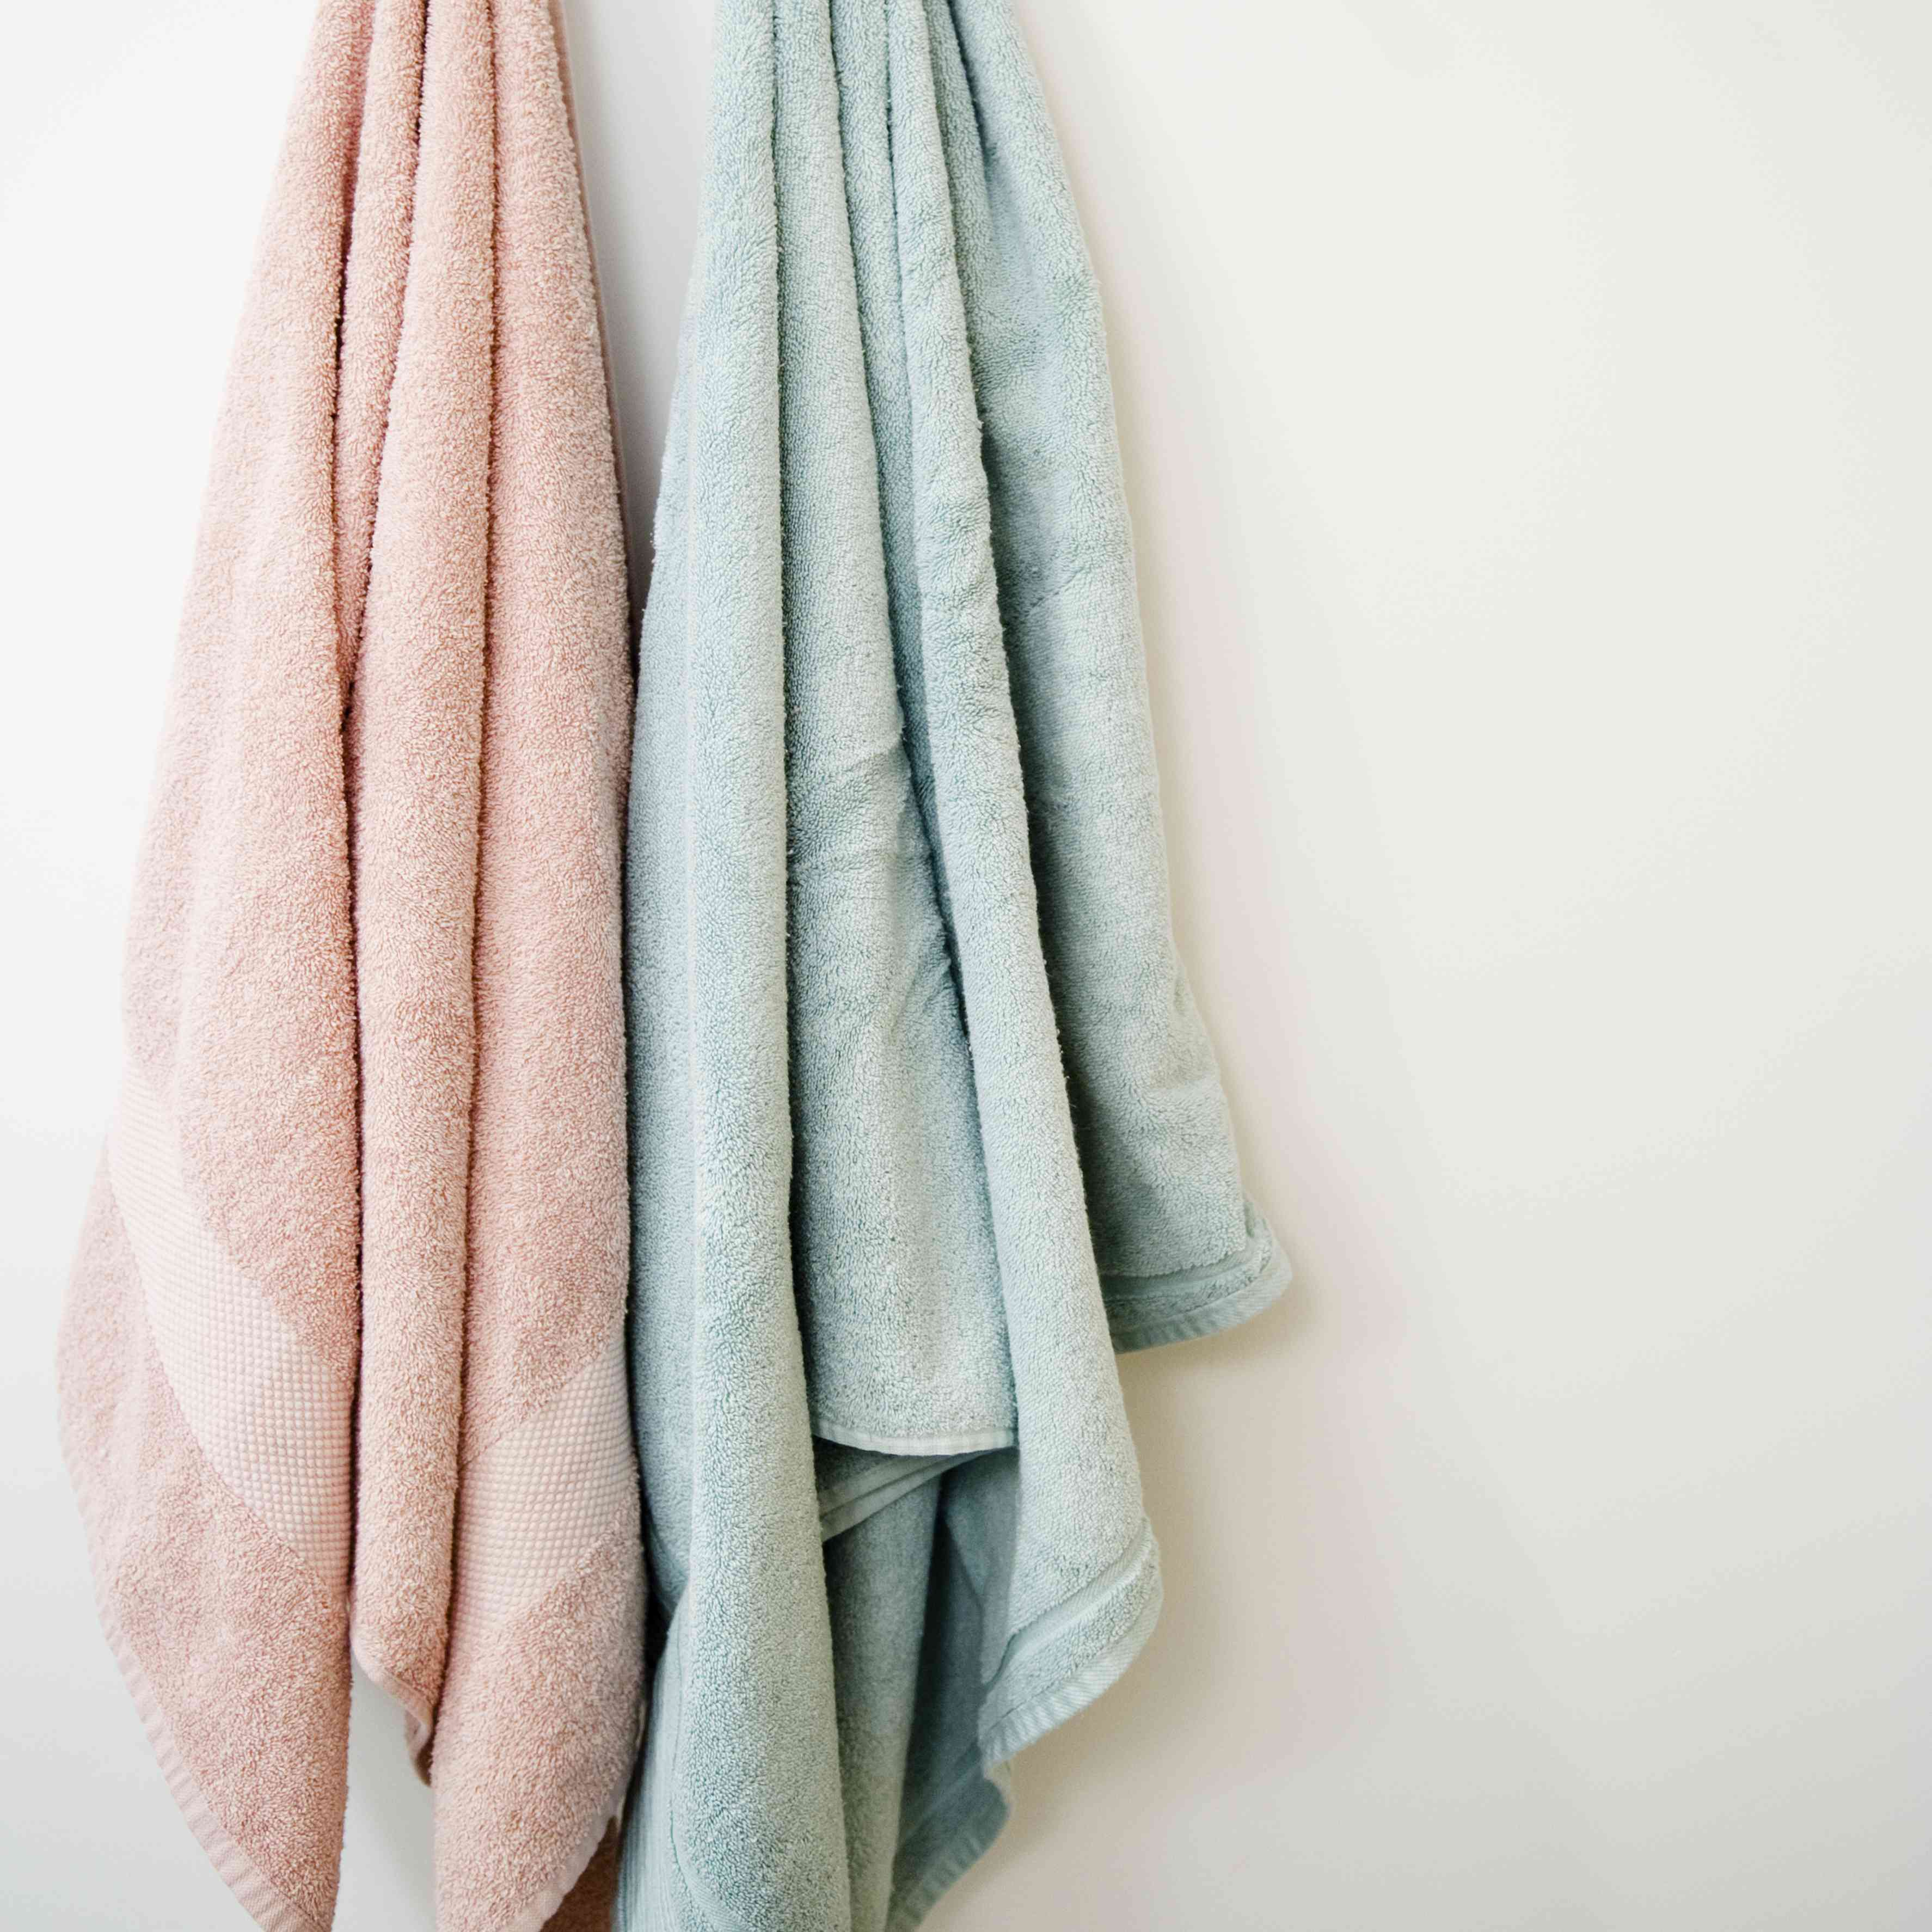 Towels hanging from wooden rack